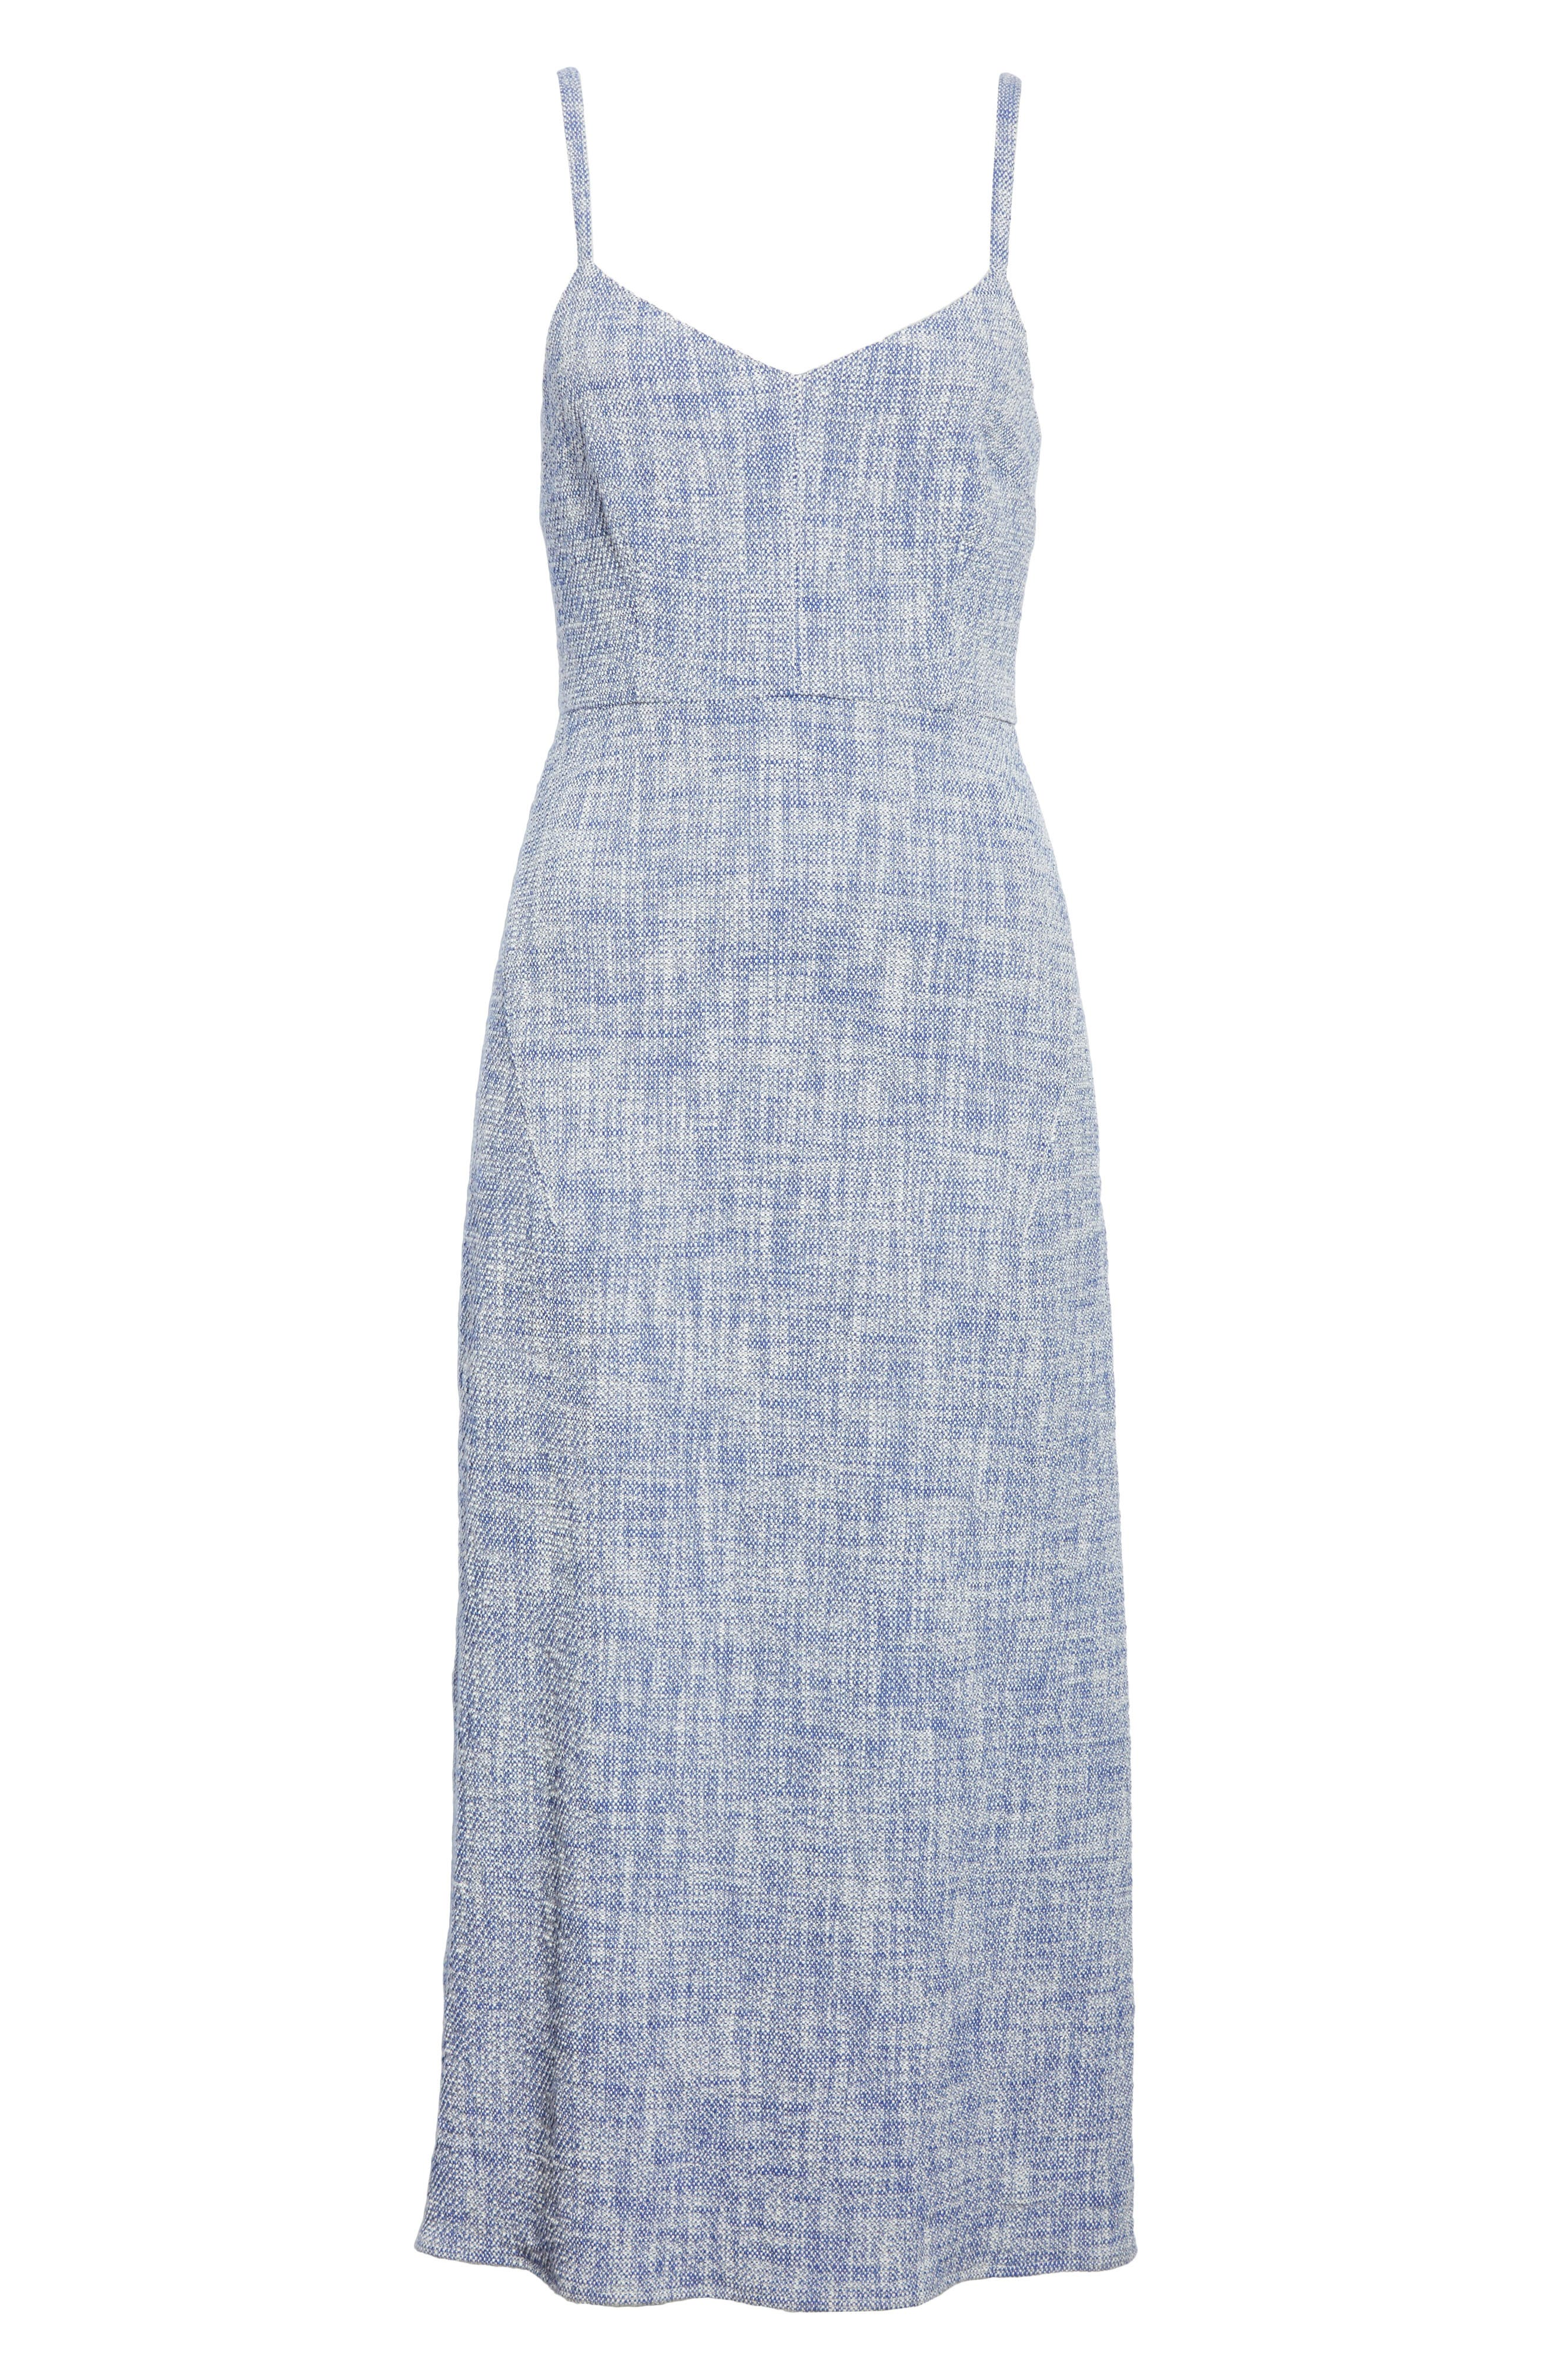 Agitator Midi Dress,                             Alternate thumbnail 6, color,                             BLUE